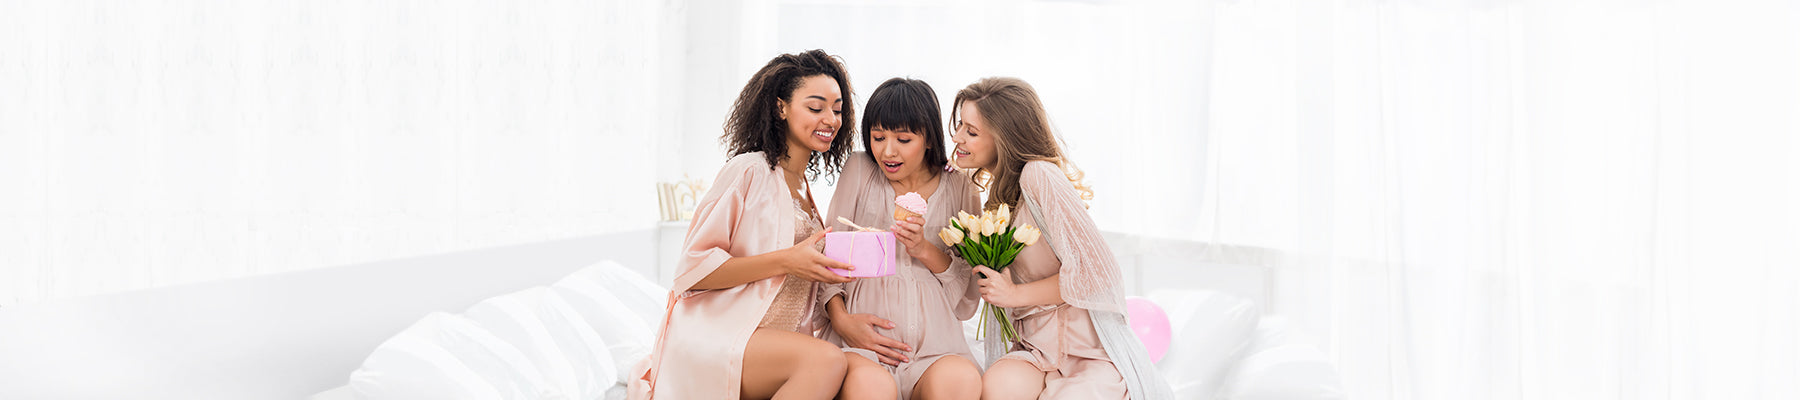 gifts-gifts-cards-baby-shower-pregnant-woman